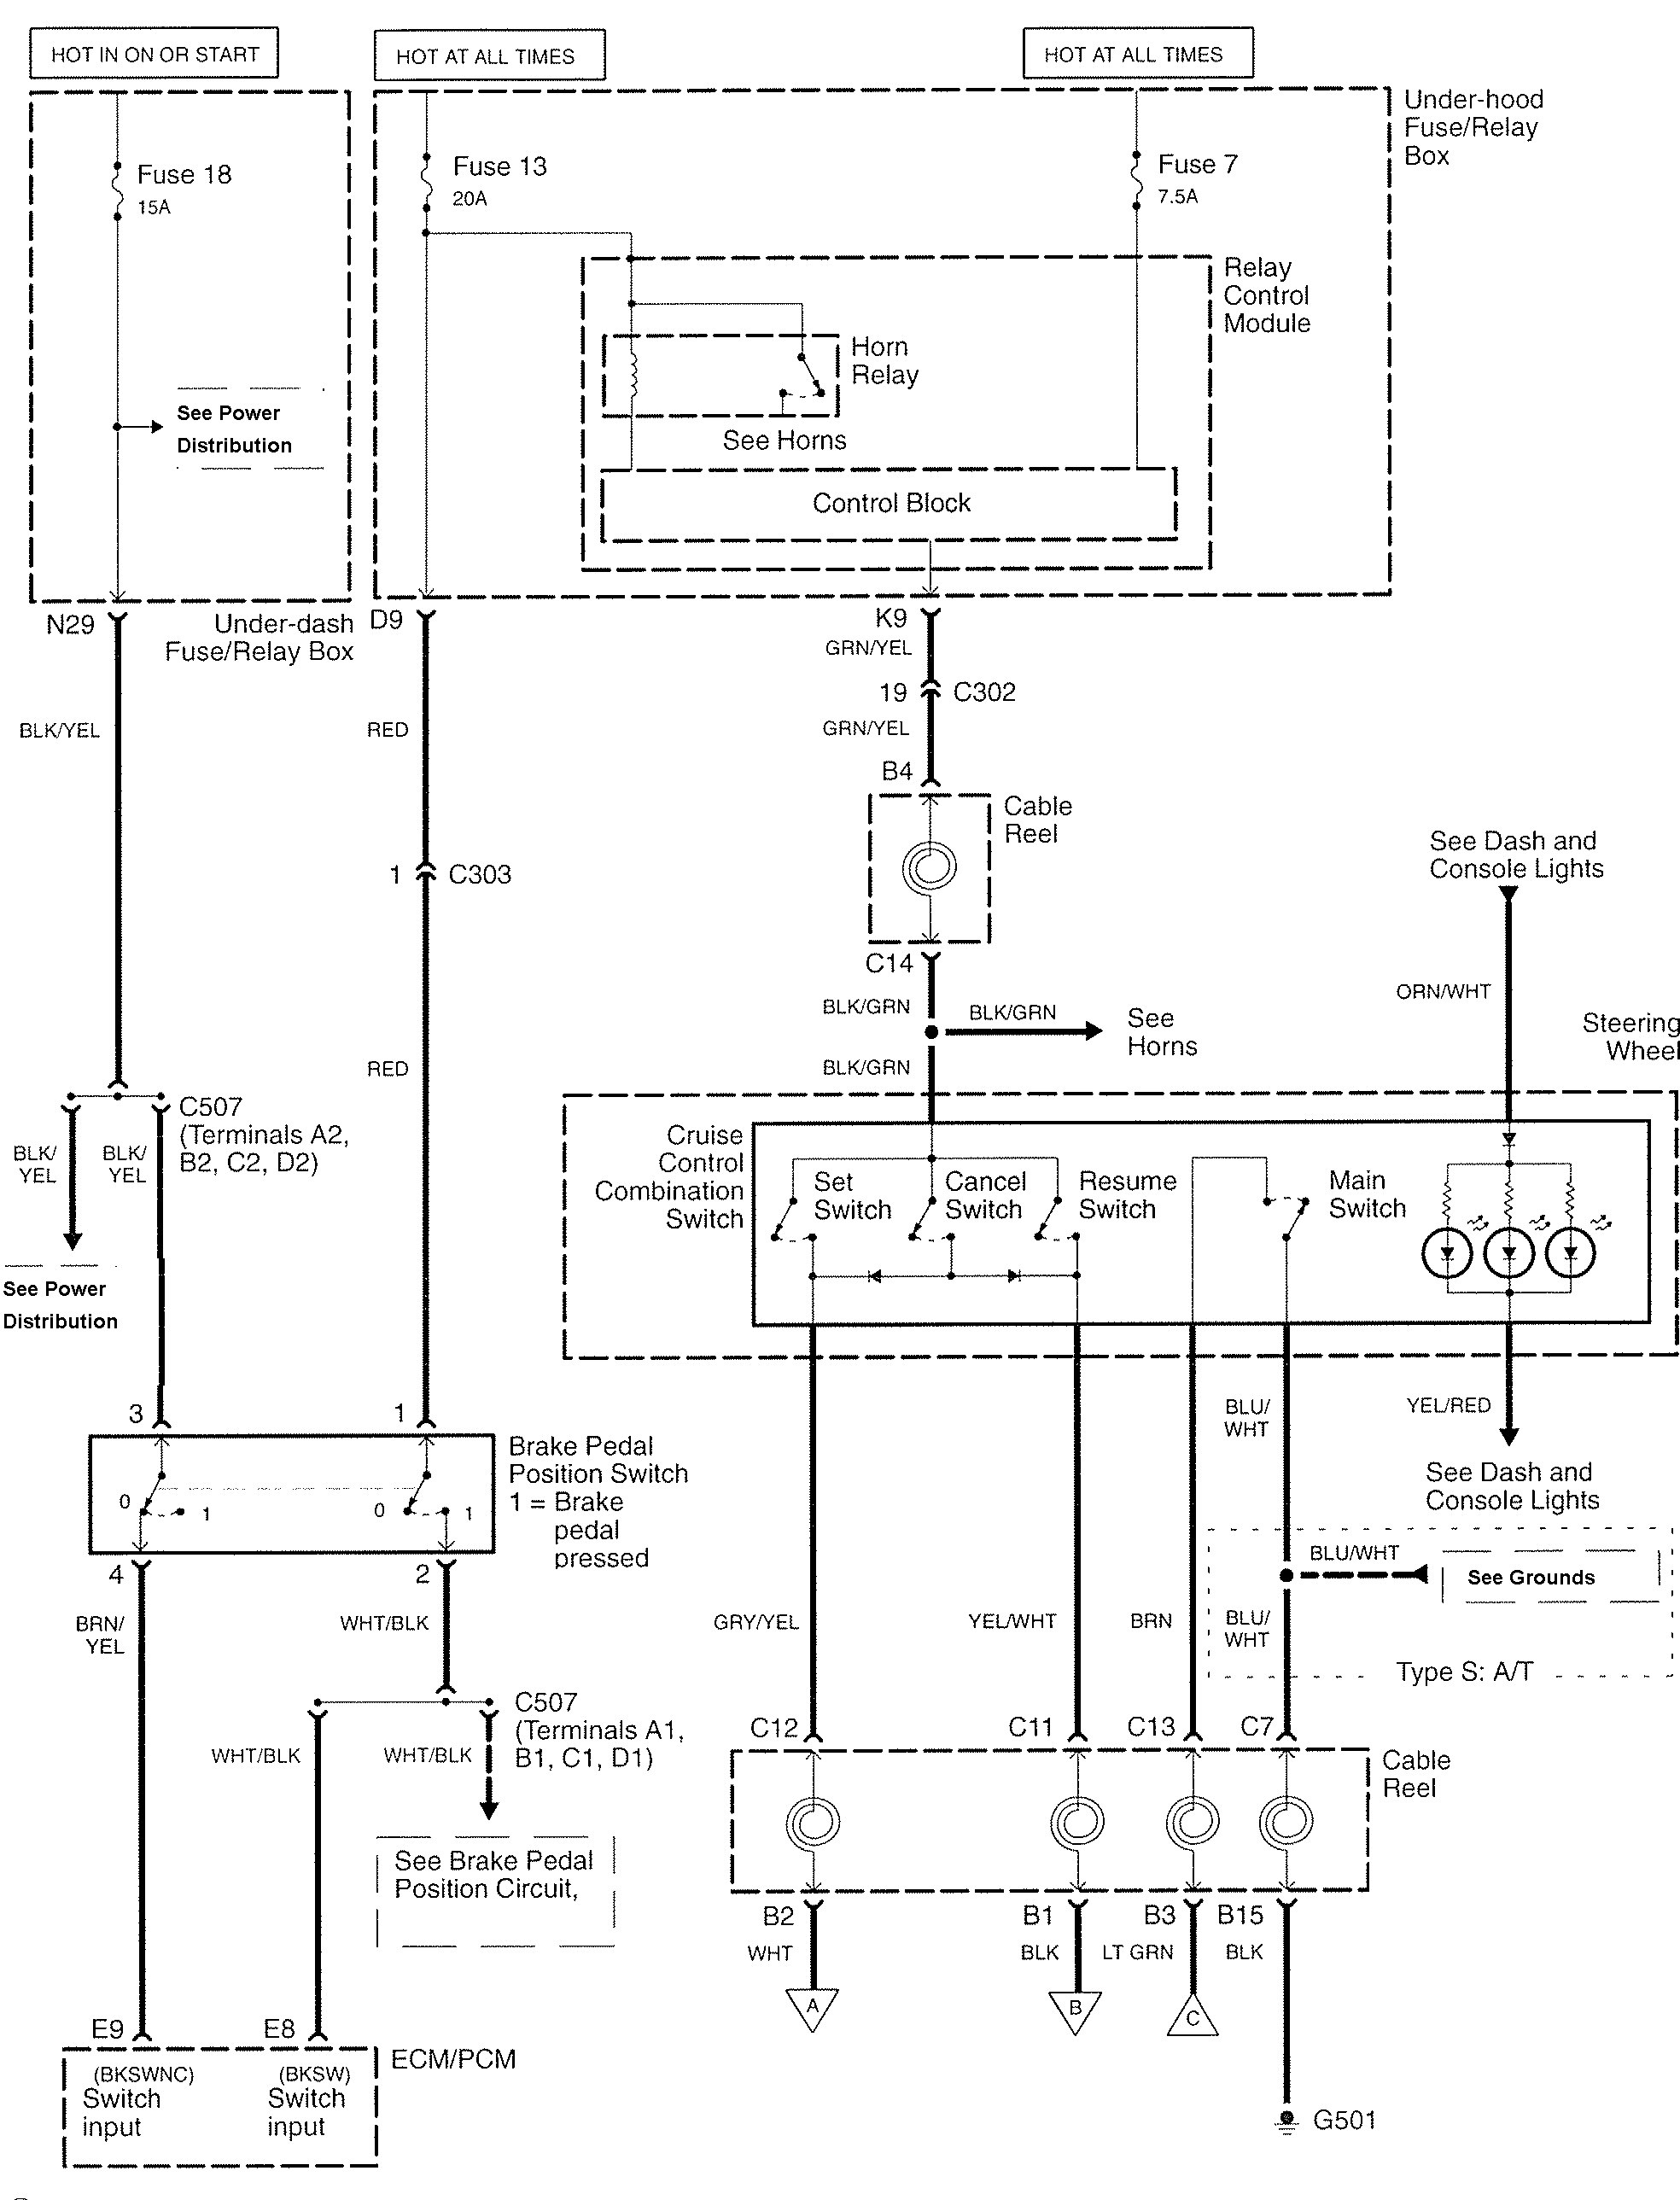 Acura Tl Wiring Diagrams Circuit And Diagram Hub Of Car Ac Example Electrical 2007 2008 Speed Control 2005